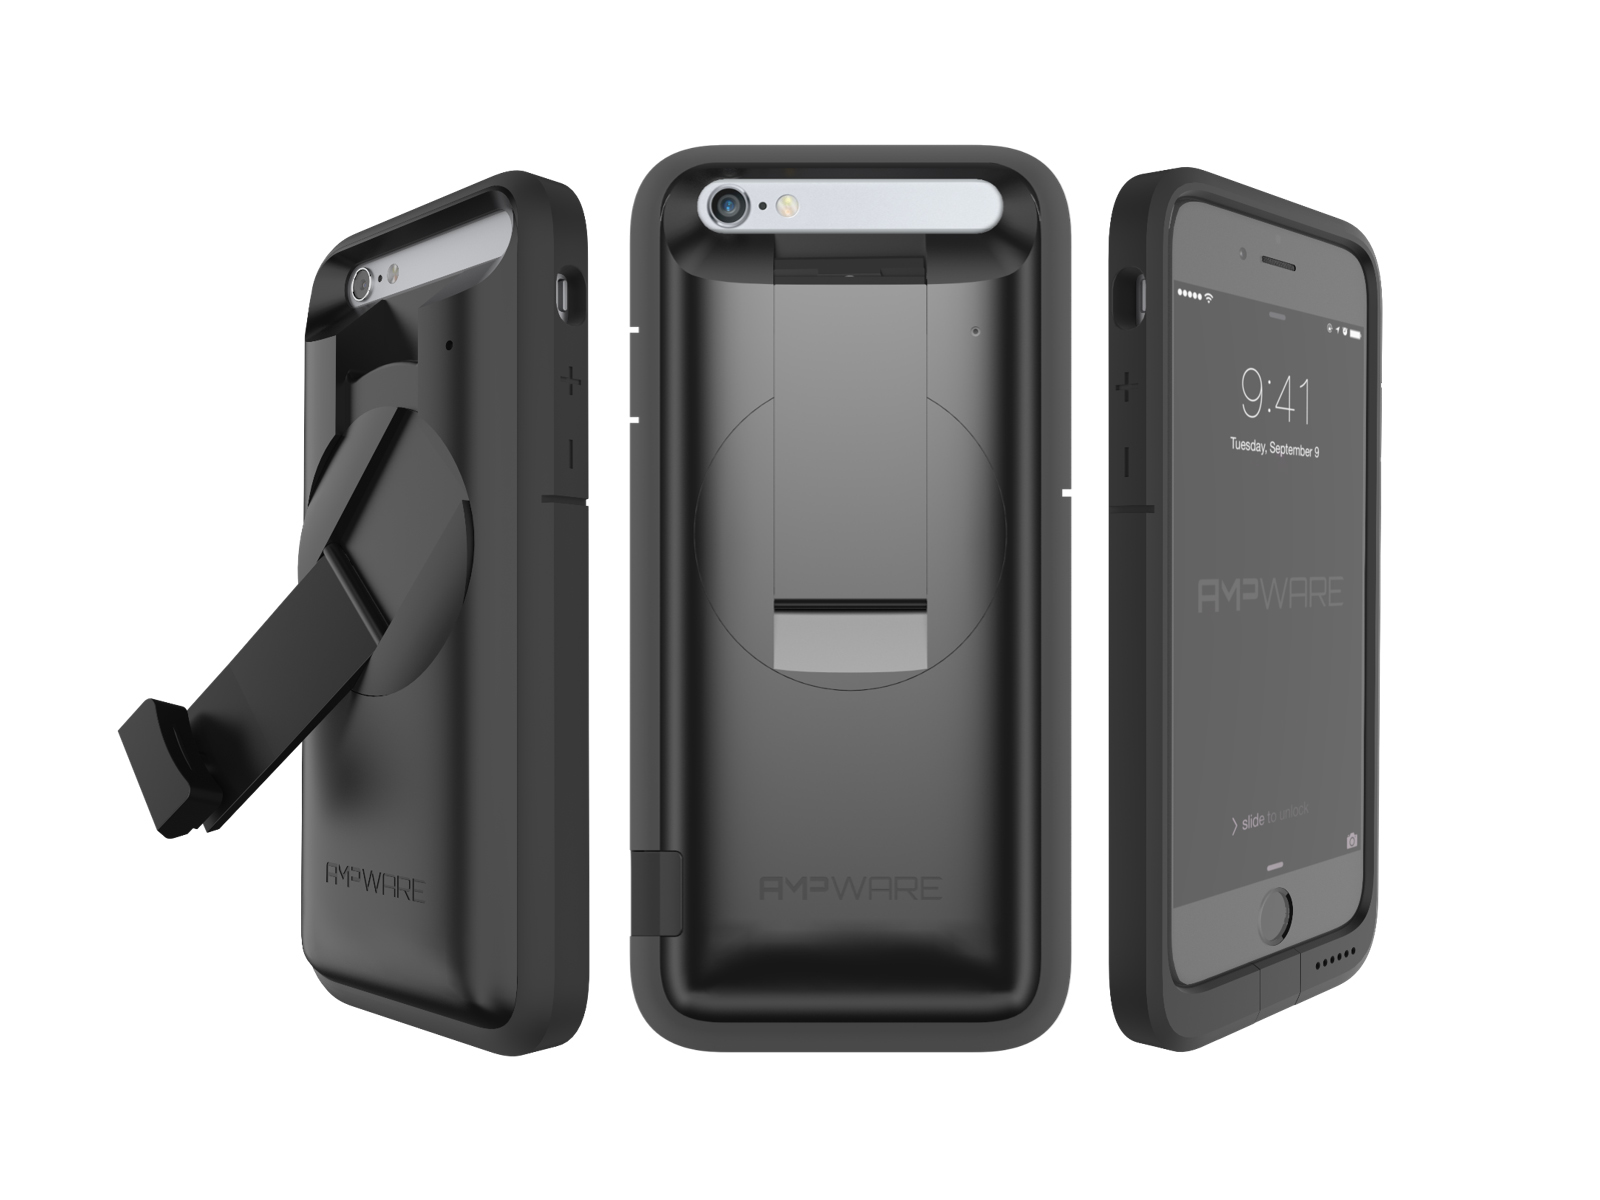 The world's first dynamo iPhone case charger